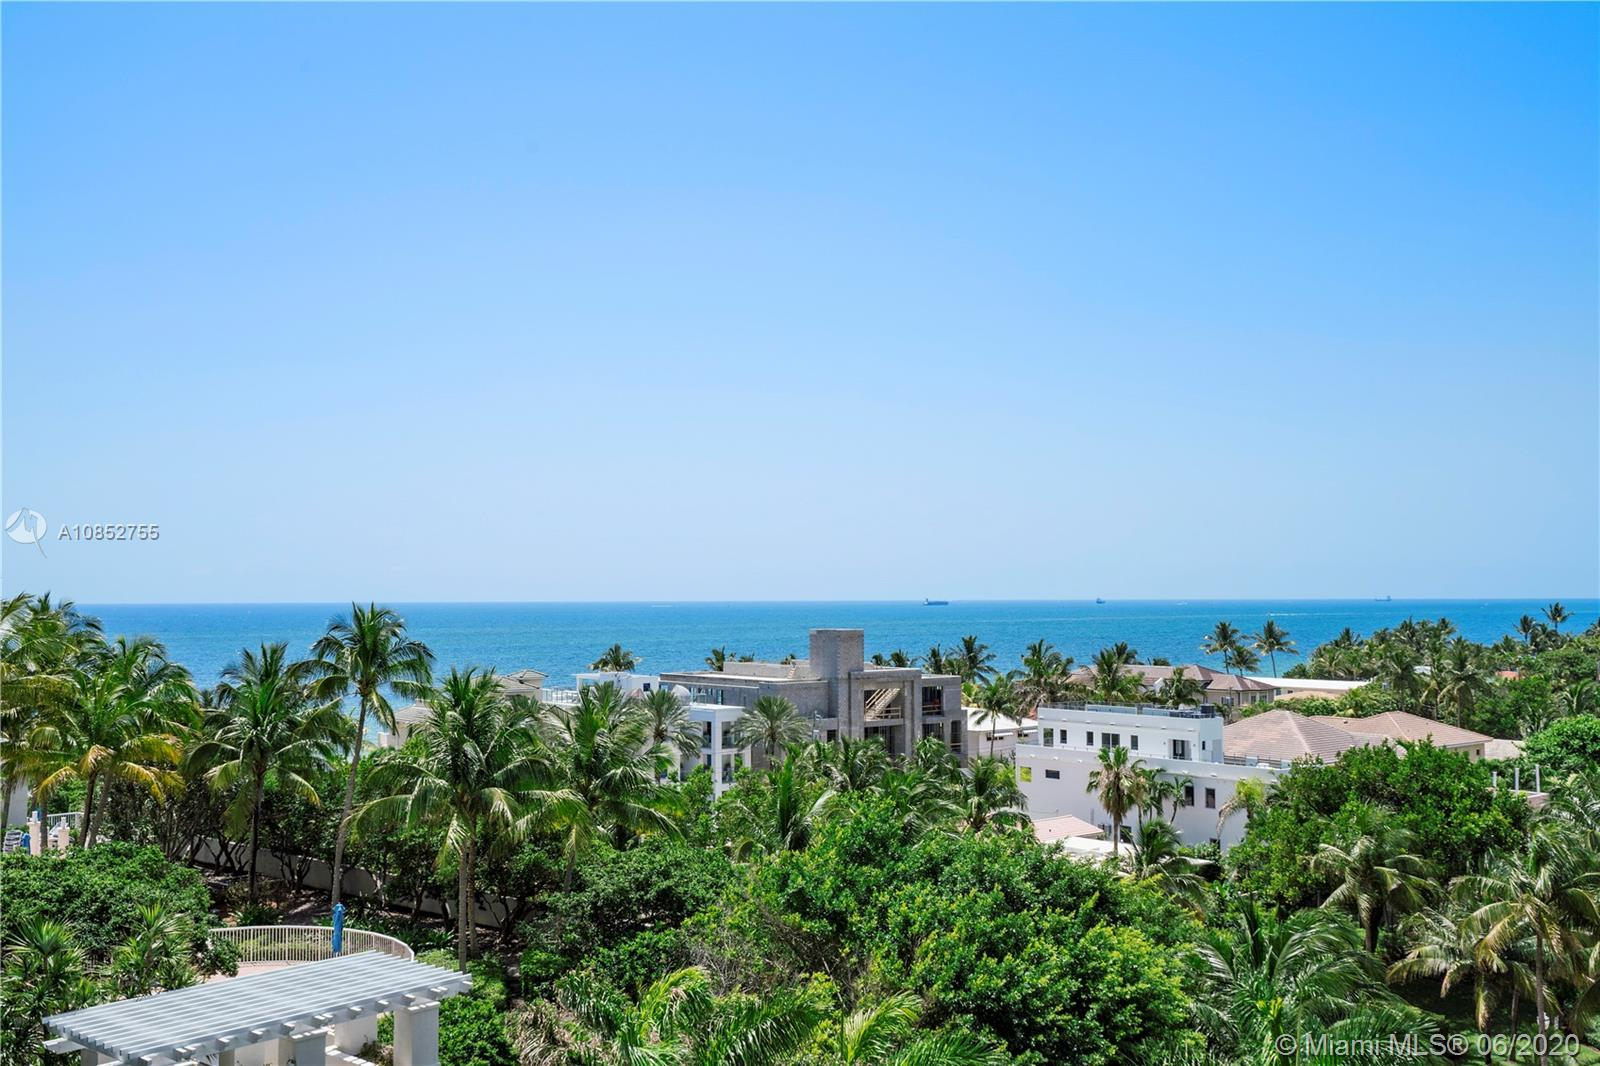 Ocean front living at its finest! This gorgeous 3/2.5 dream condo is luxuriously appointed with all